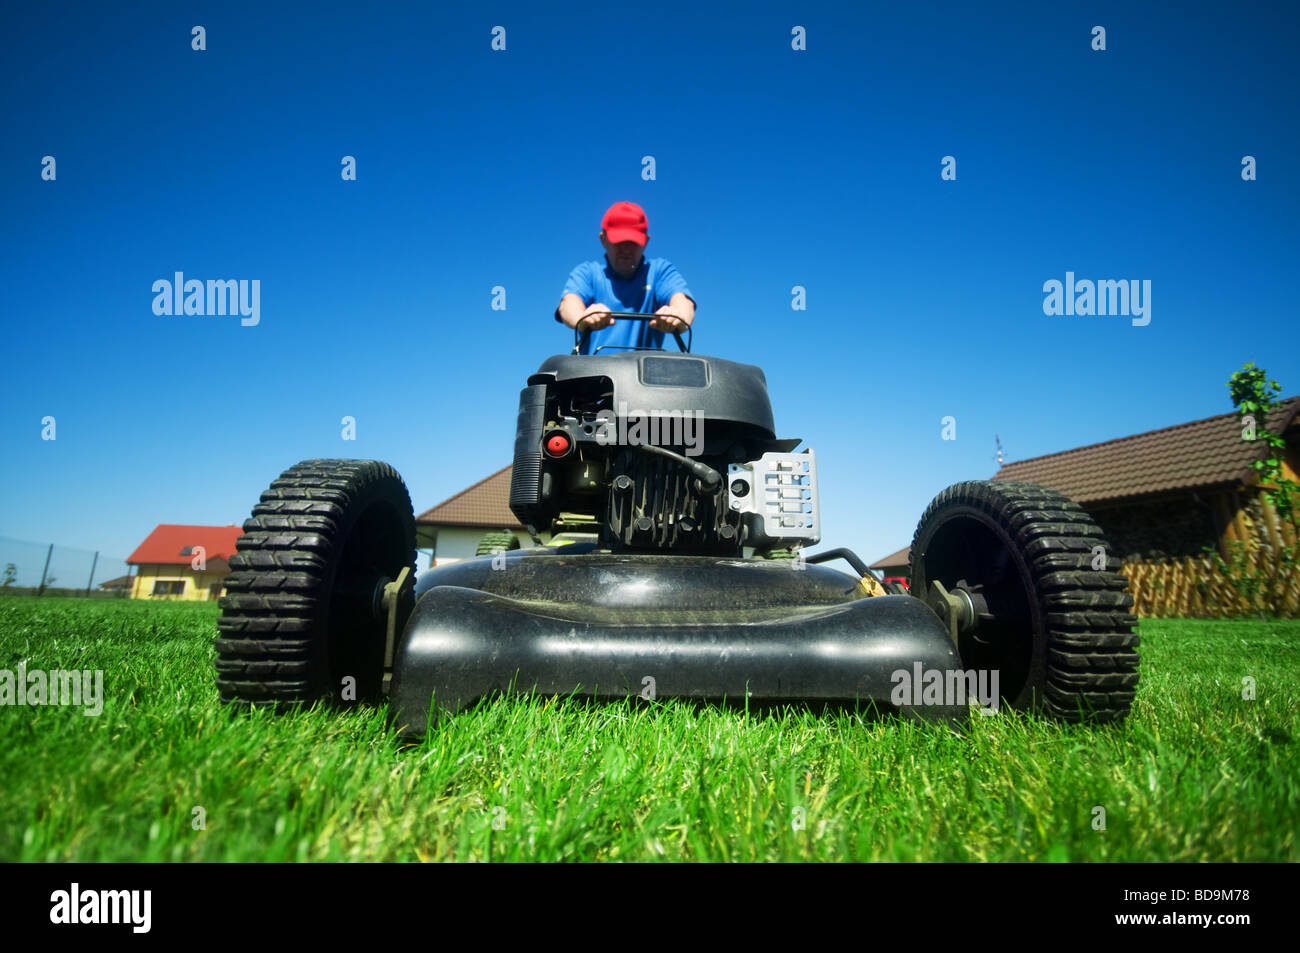 Mowing the lawn - Stock Image